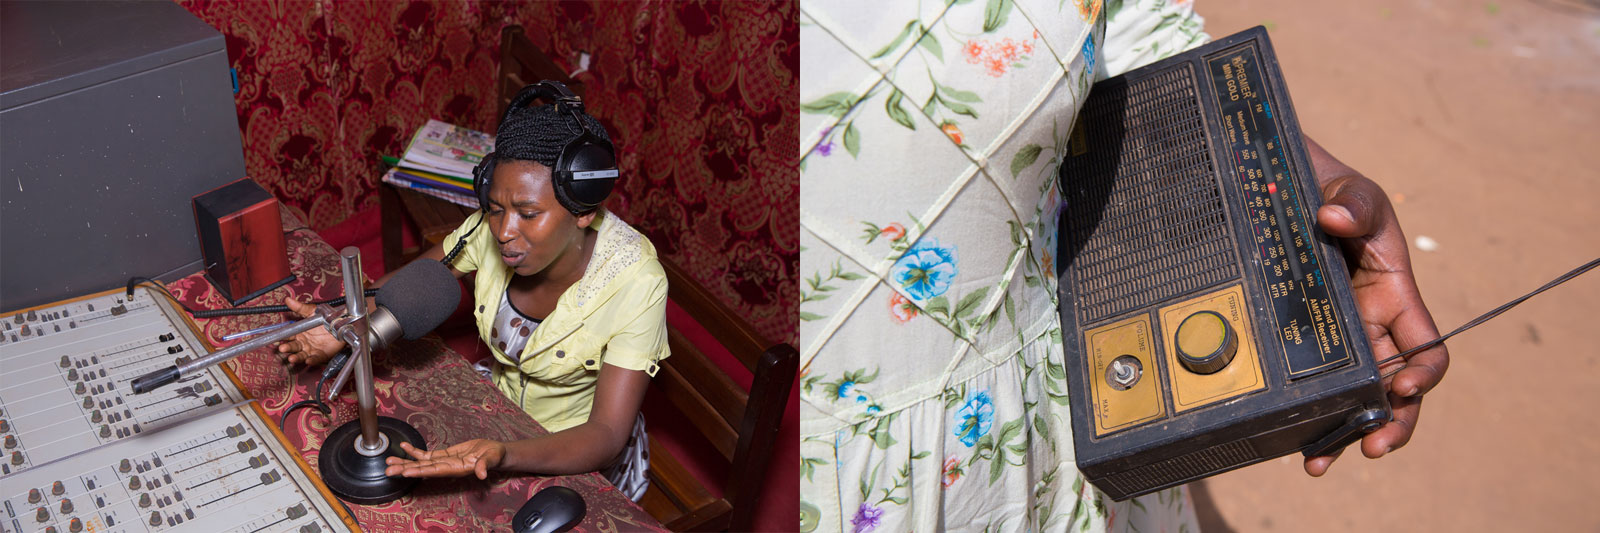 In Uganda, the National Association of Professional Environmentalists (NAPE) have established a radio station called Community Green Radio where women's stories are broadcast. Radio staff source stories from local women's groups, with prominent topics including the gendered impacts of land grabs in Uganda and climate change and pollution (Images 12 and 13). On the other end, NAPE also organises Listeners Clubs, where women can gather with radios to listen to the station (Image 14).